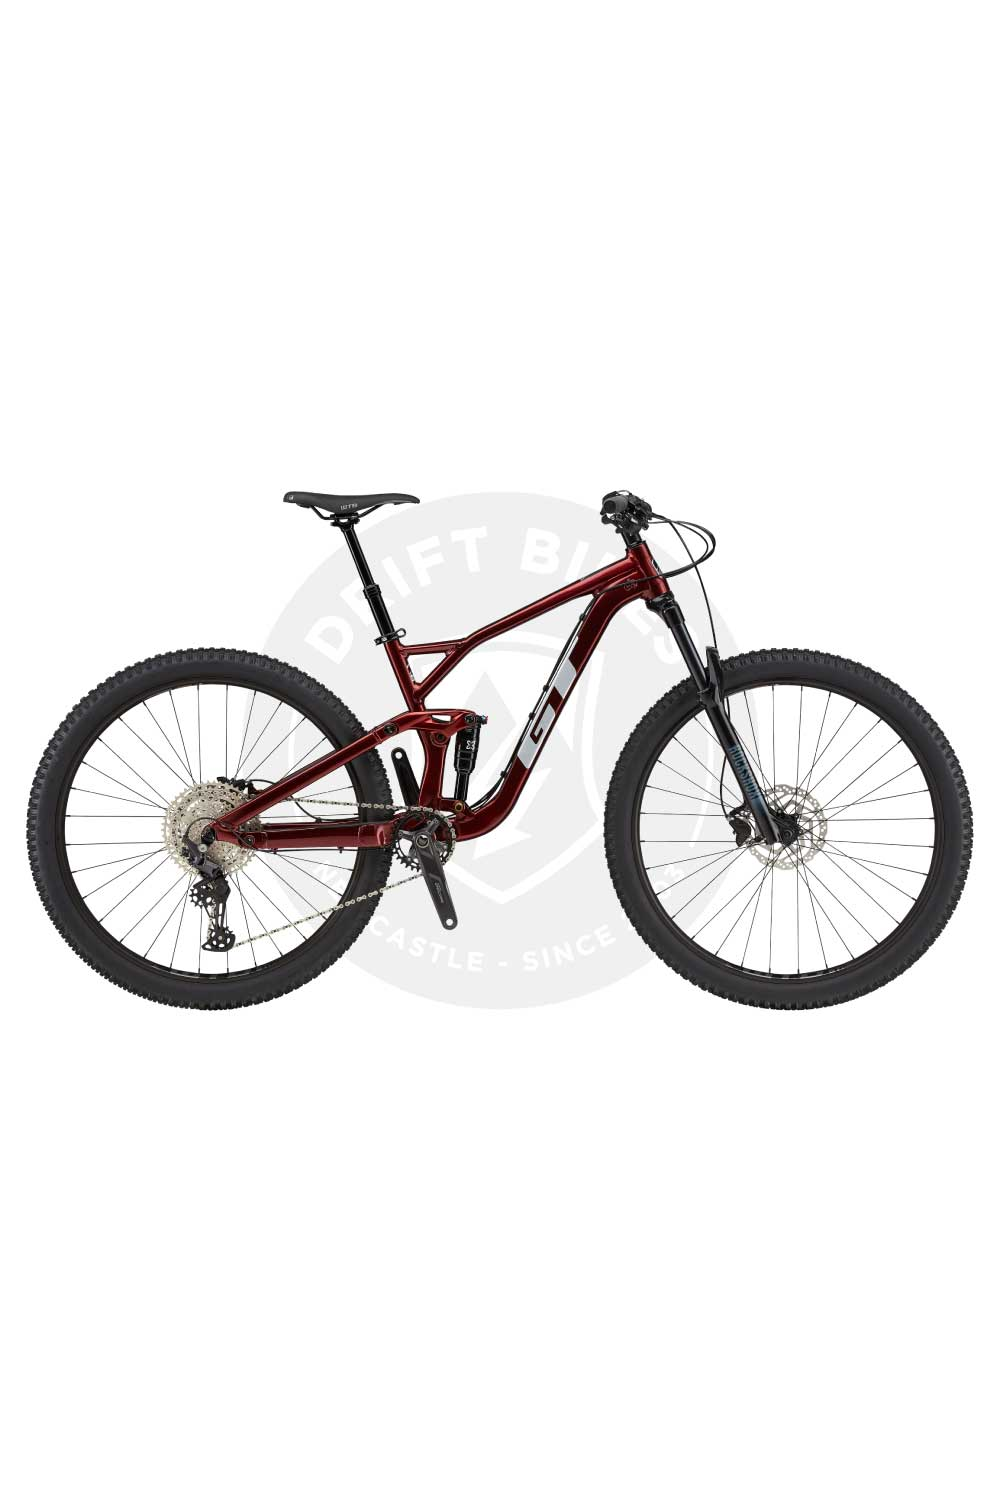 "GT Bicycles 2021 Sensor Sport 29"" Mountain Bike"